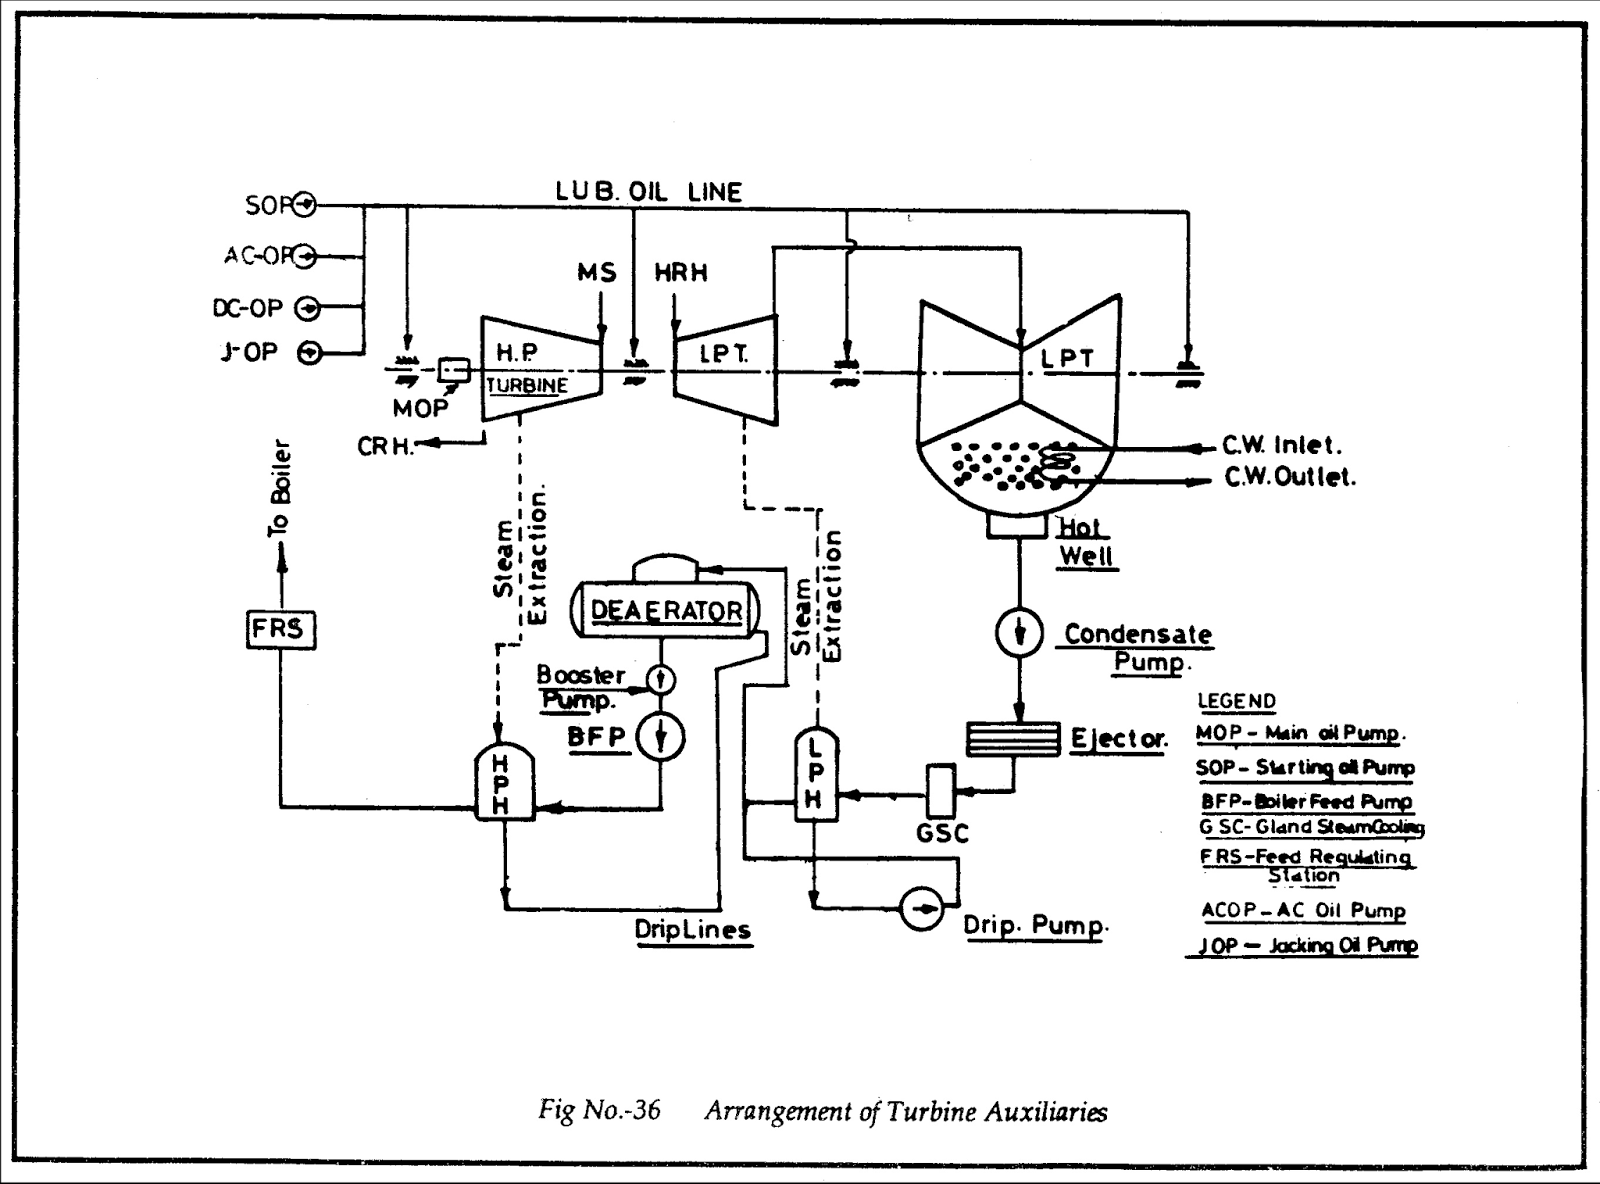 Hp Lp By Pass System All About Power Plant 500 Mw Diagram Arrangement